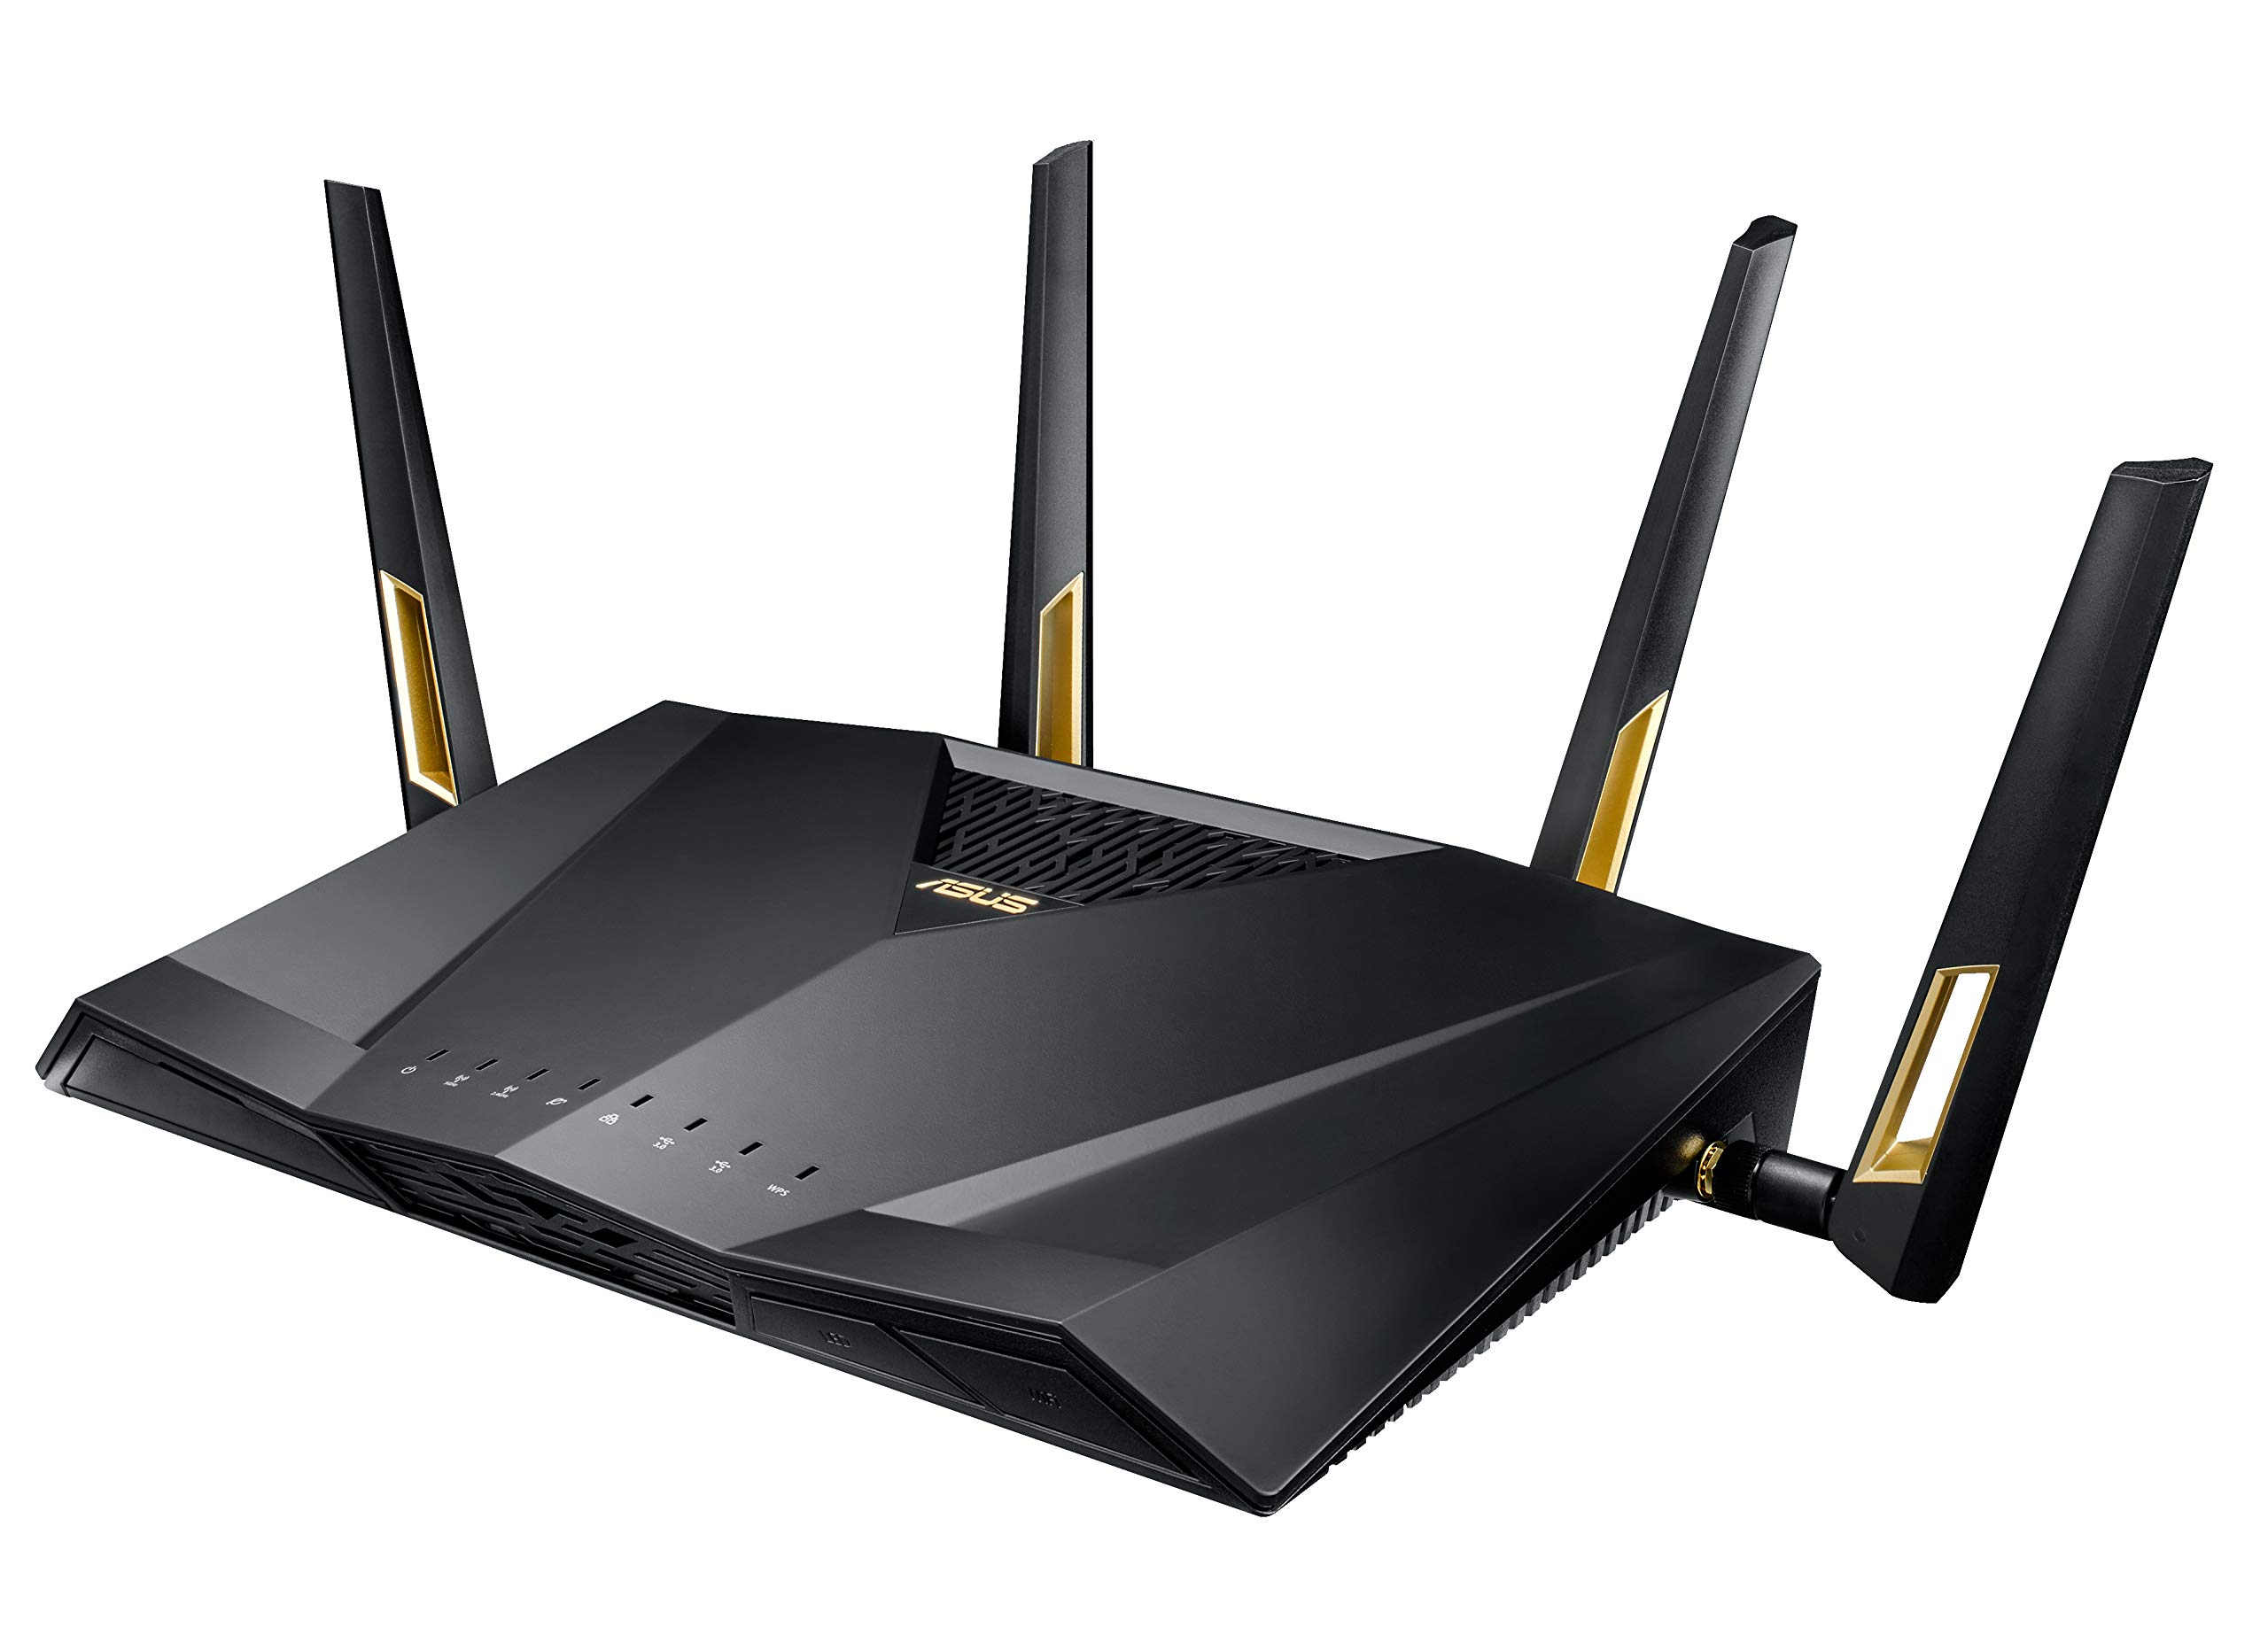 ASUS RT-AX88U AX6000 Dual-Band WiFi Router, Aiprotection Lifetime Security by Trend Micro, Aimesh Compatible for Mesh WiFi System, Next-Gen WiFi 6, Wireless 802.11Ax, 8 X Gigabit LAN Ports 1 Next-gen Wi-Fi standard - 802.11Ax Wi-Fi standard for better efficiency and throughput. Ultrafast Wi-Fi speed - 6000 Mbps Wi-Fi speed to handle even the busiest network with ease. Wider usage and more convenience - 4 antennas + 8 LAN ports to support more clients at the same time.